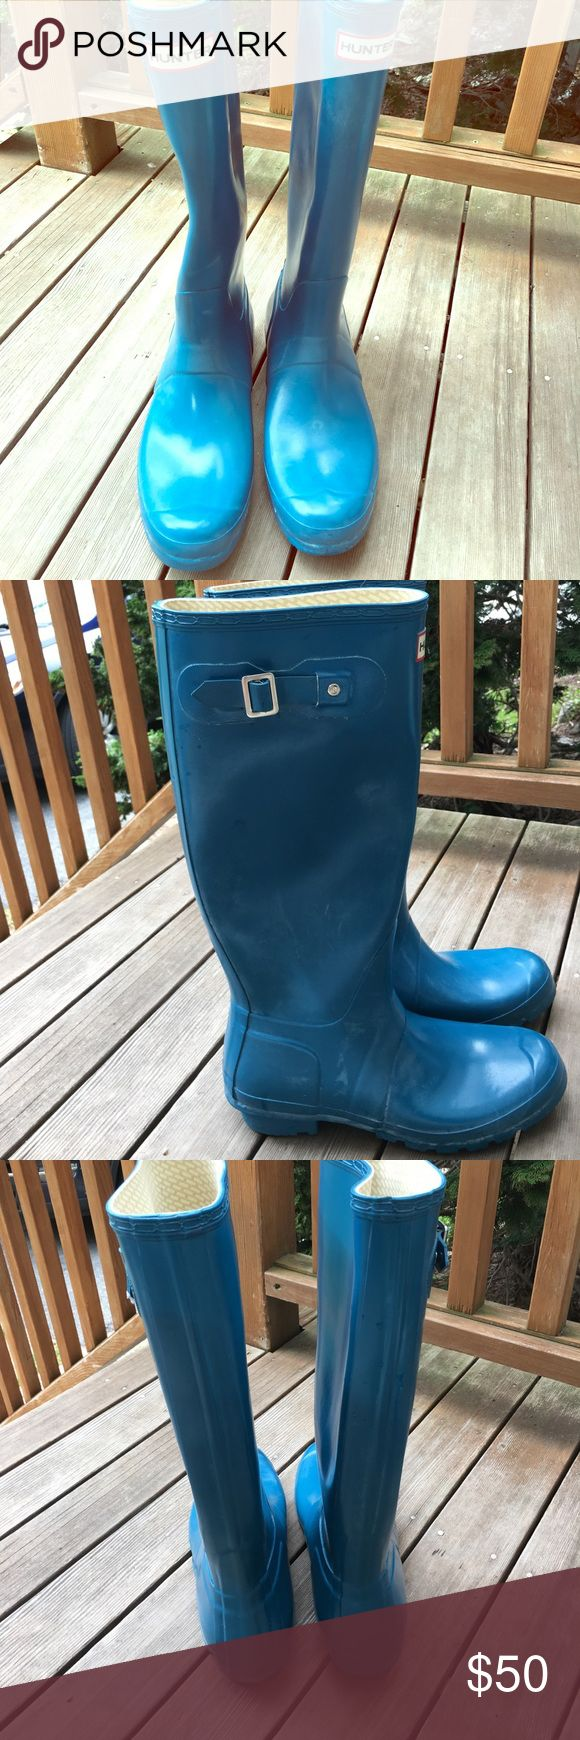 Hunter Tall Wellies Teal US 10 Women's UK 8 Hunter tall boots in excellent condition size US 10 Women's and 9 Men's, UK 8 in Teal color Hunter Boots Shoes Winter & Rain Boots